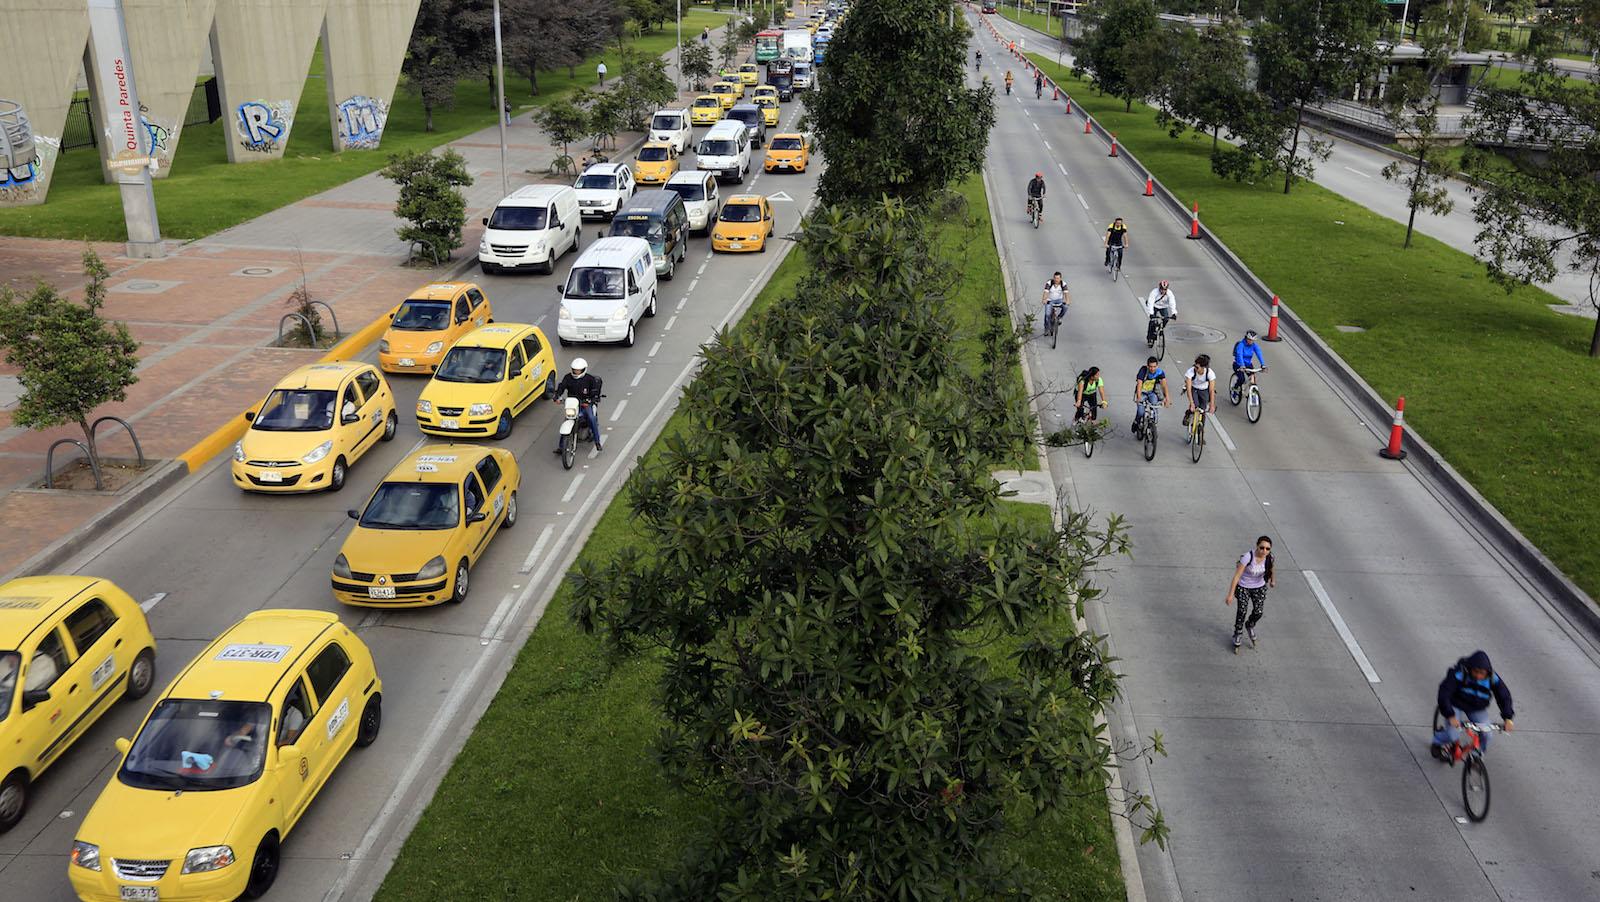 """Cyclists ride their bicycles during """"No Car Day"""" in Bogota, February 5, 2015. The event was organized by the mayoral office of Bogota to encourage residents to use other modes of public transportation to help reduce the amount of pollution. REUTERS/Jose Miguel Gomez   (COLOMBIA - Tags: ENVIRONMENT TRANSPORT SOCIETY) - RTR4ODR1"""